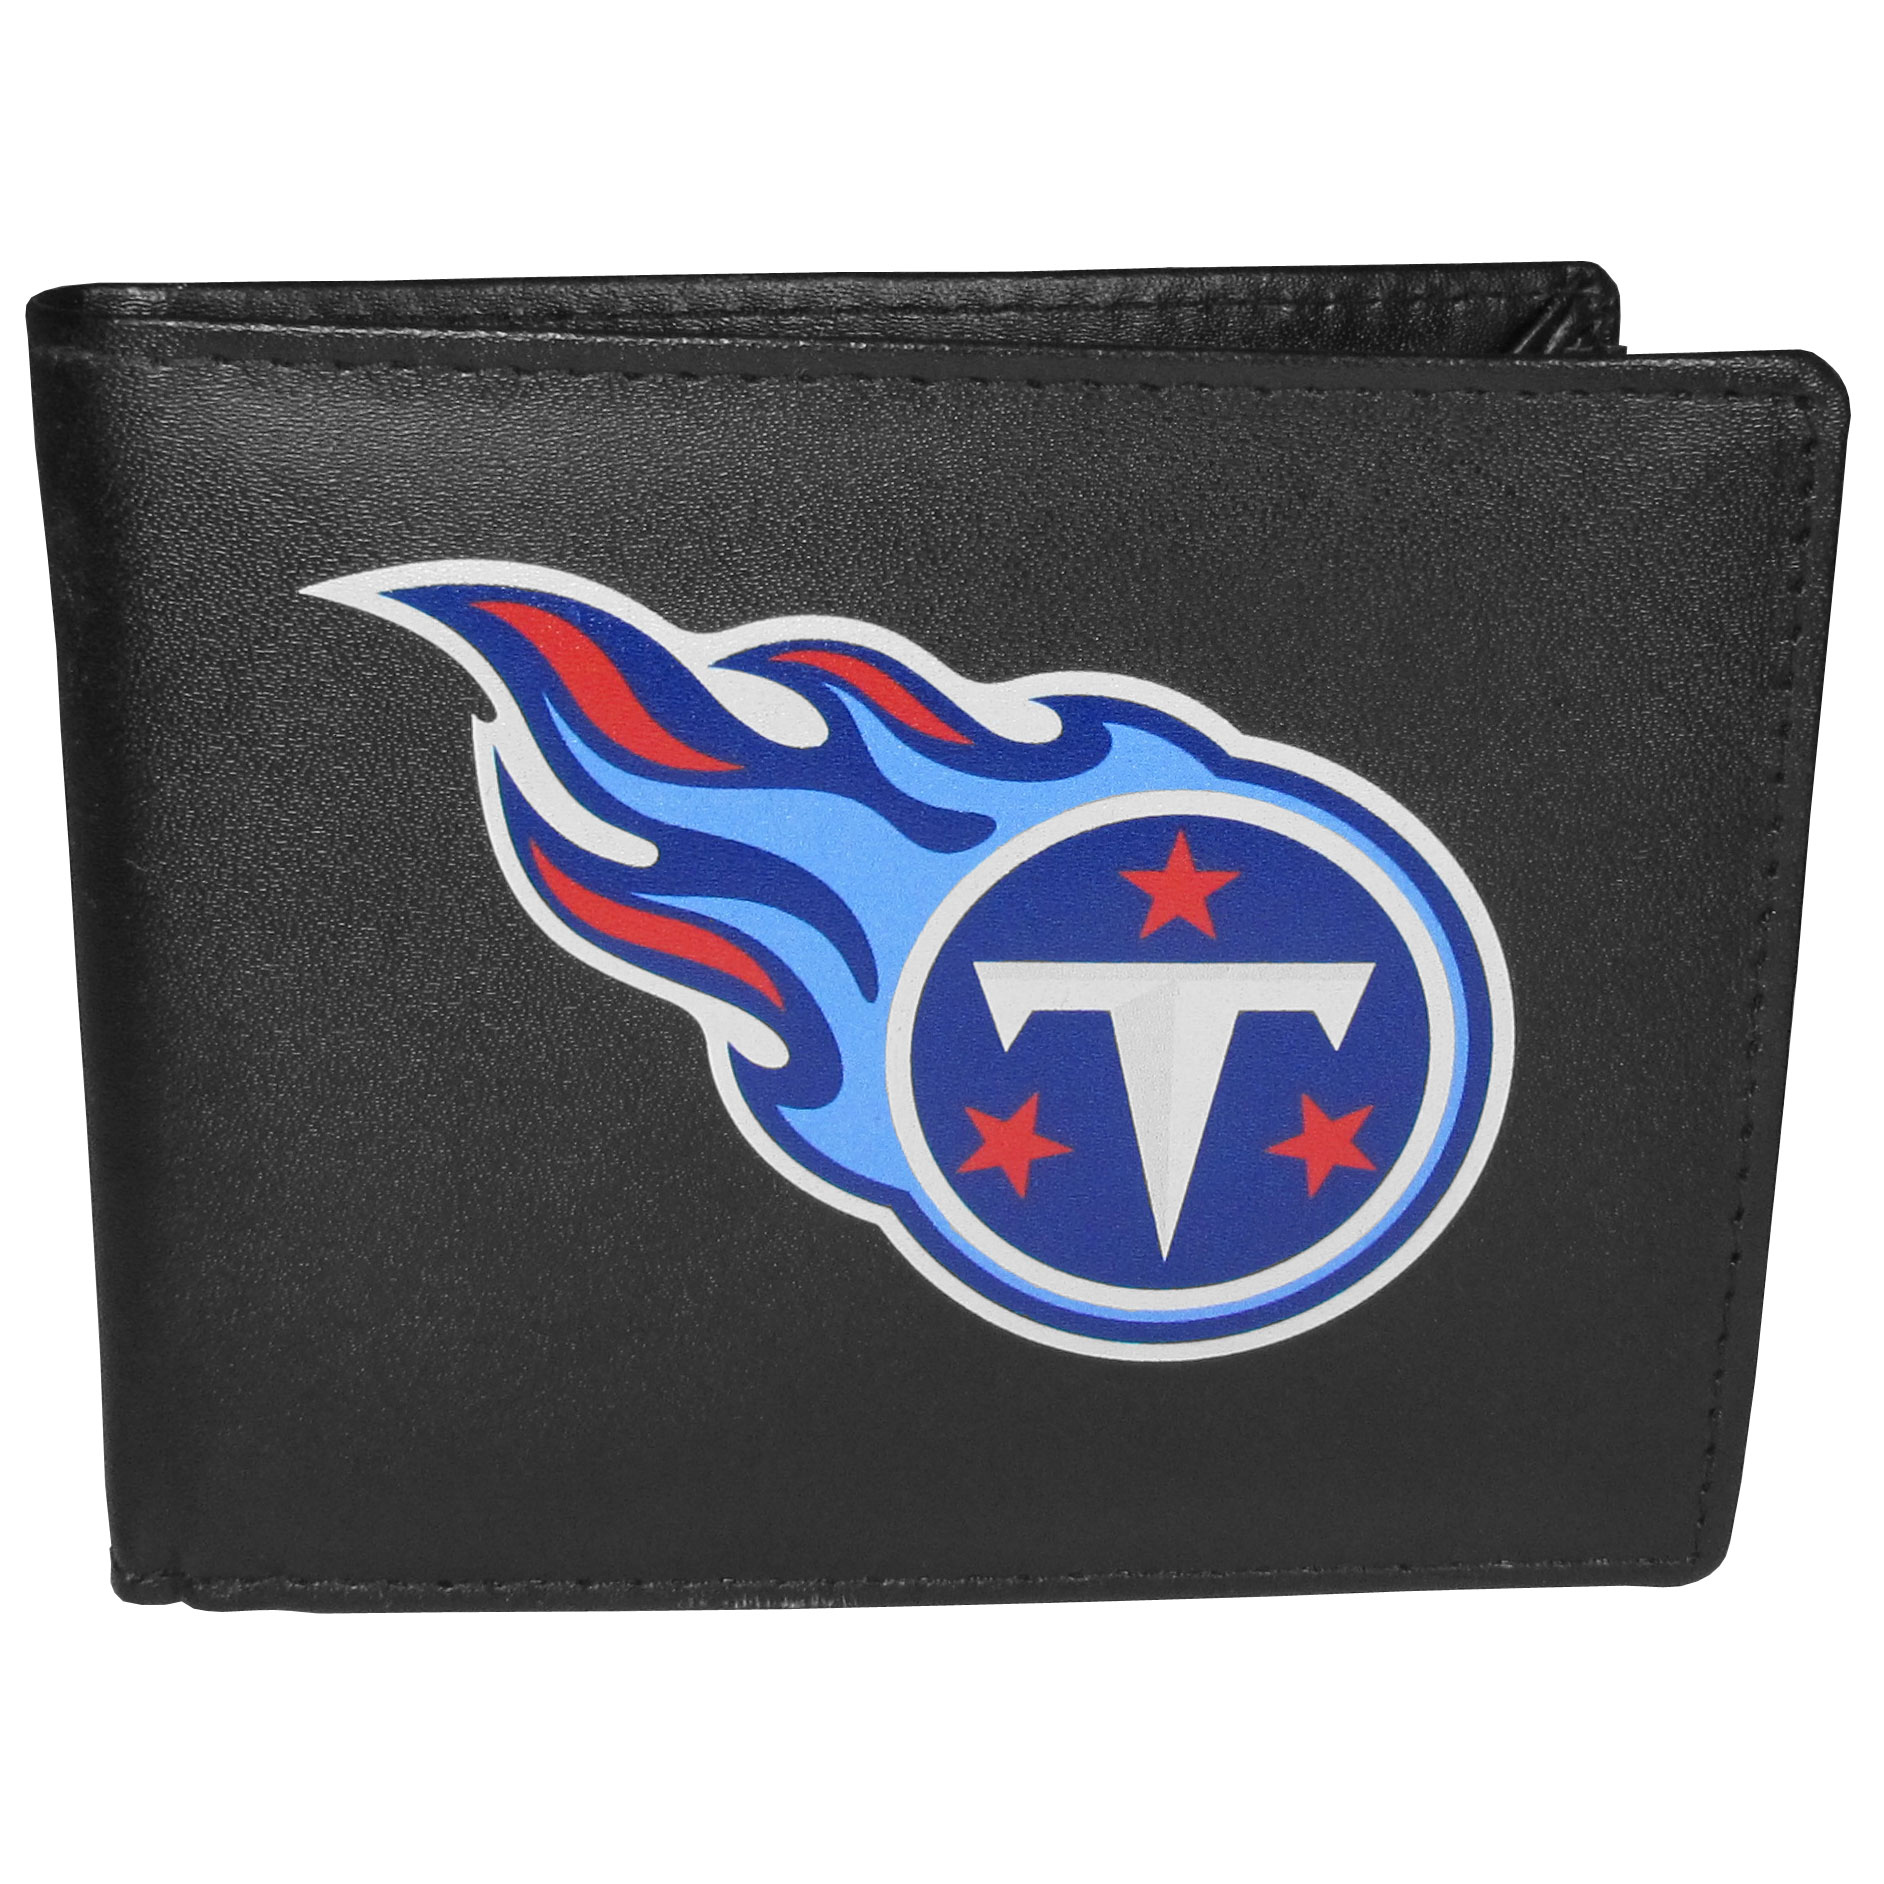 Tennessee Titans Bi-fold Wallet Large Logo - Sports fans do not have to sacrifice style with this classic bi-fold wallet that sports the Tennessee Titans extra large logo. This men's fashion accessory has a leather grain look and expert craftmanship for a quality wallet at a great price. The wallet features inner credit card slots, windowed ID slot and a large billfold pocket. The front of the wallet features a printed team logo.